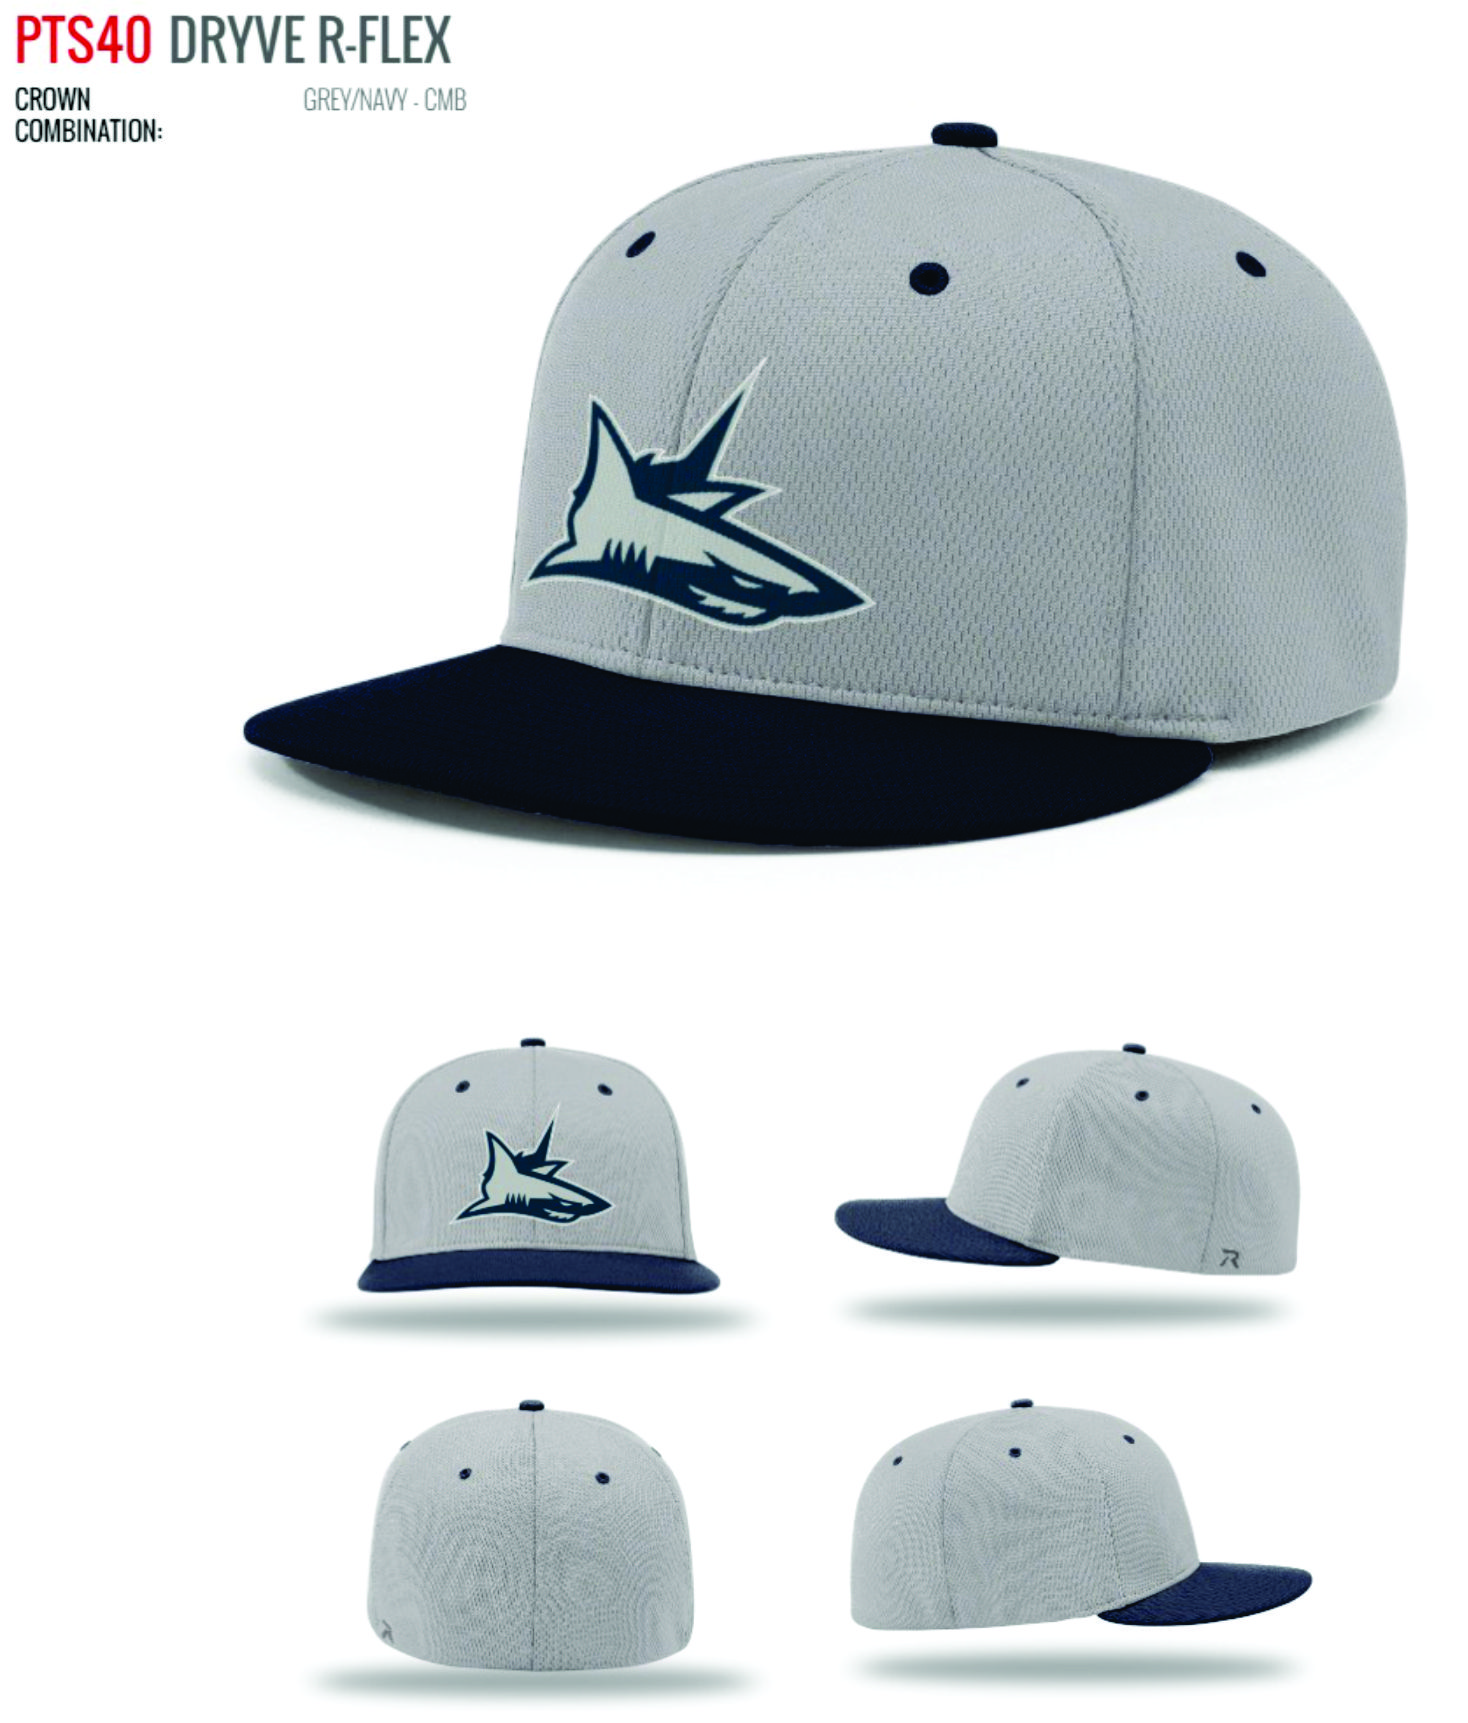 8ef337bd7cb FITTED SHARKS PLAYER CAP - PTS-40 - RETAIL